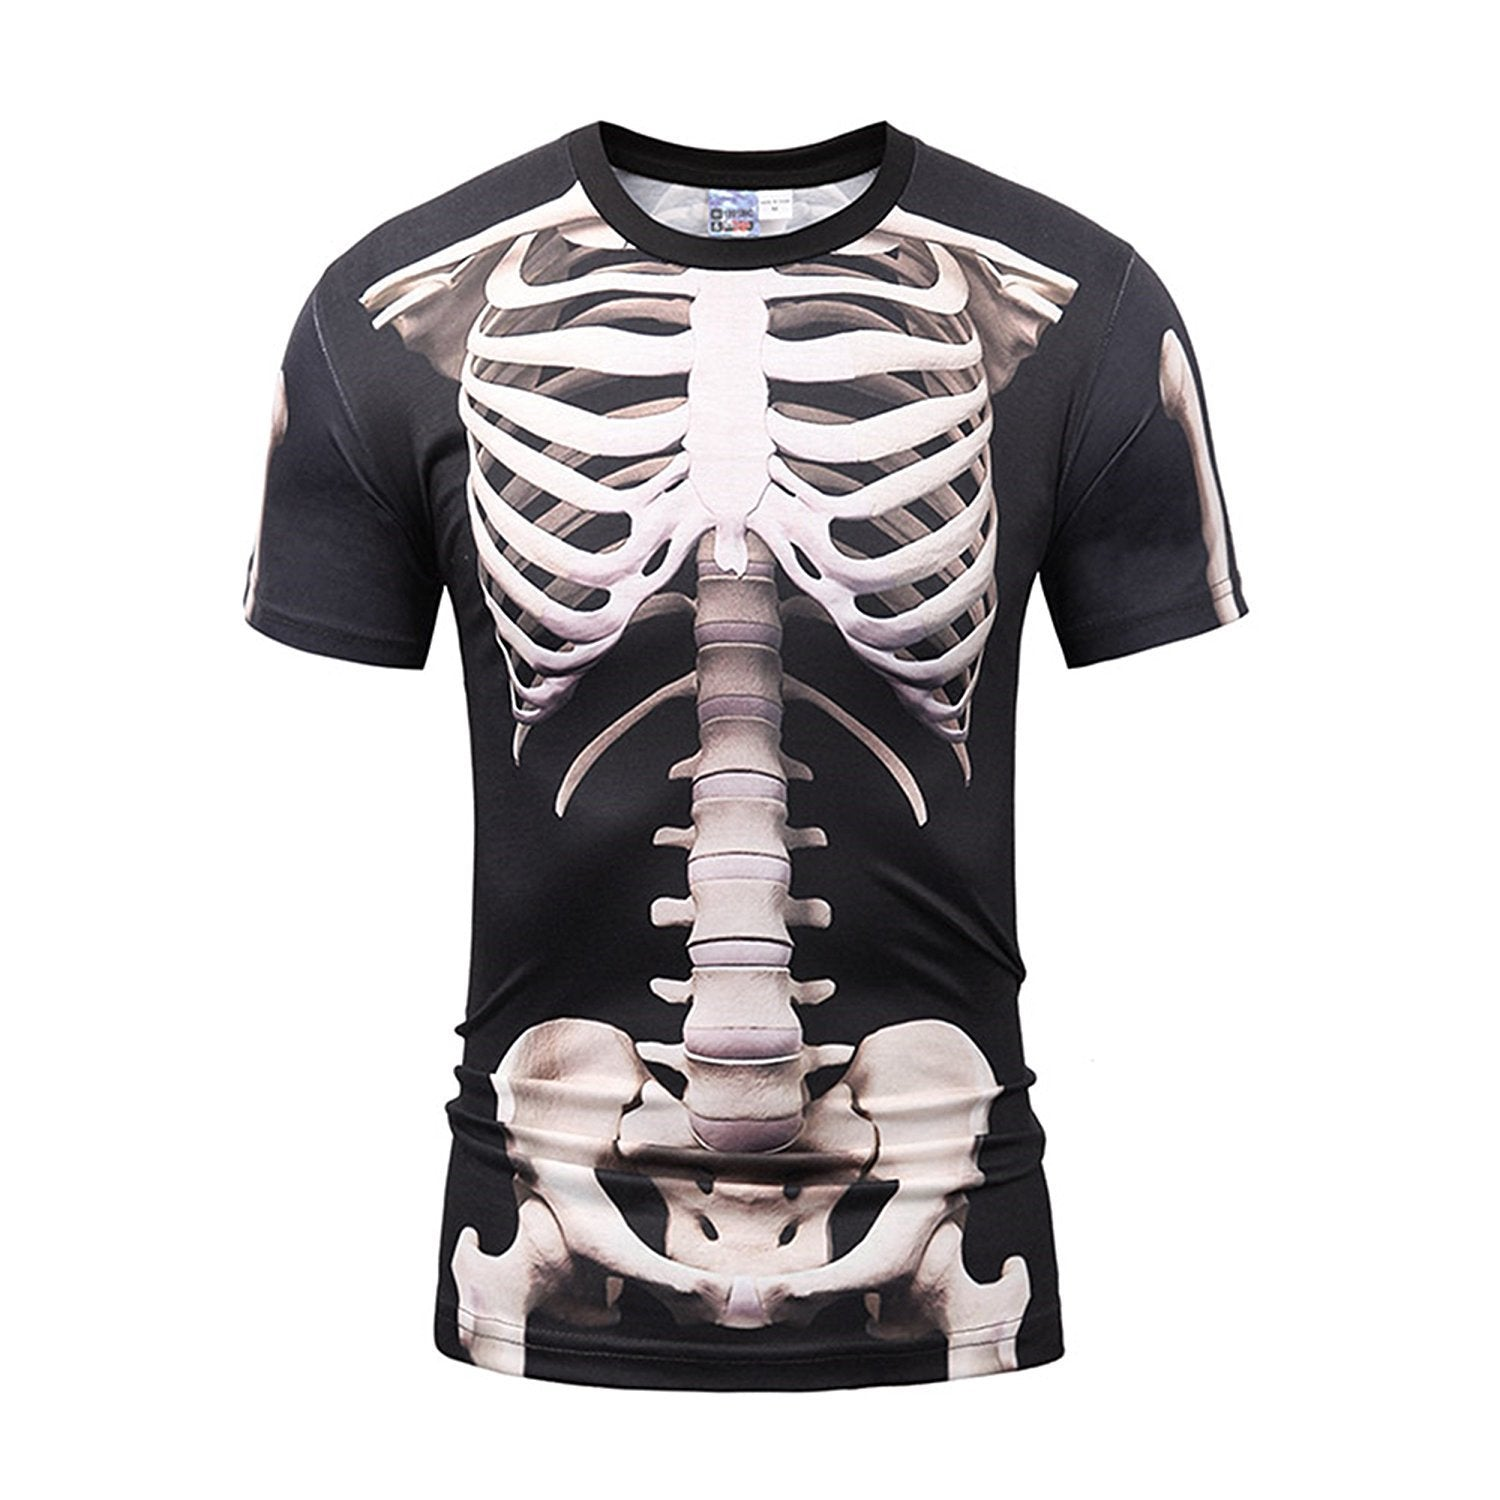 Bear Essentials Clothing Company 3D Print t Shirt Skeleton Design Slim Short Sleeve T-Shirt - Bear Essentials Clothing Company